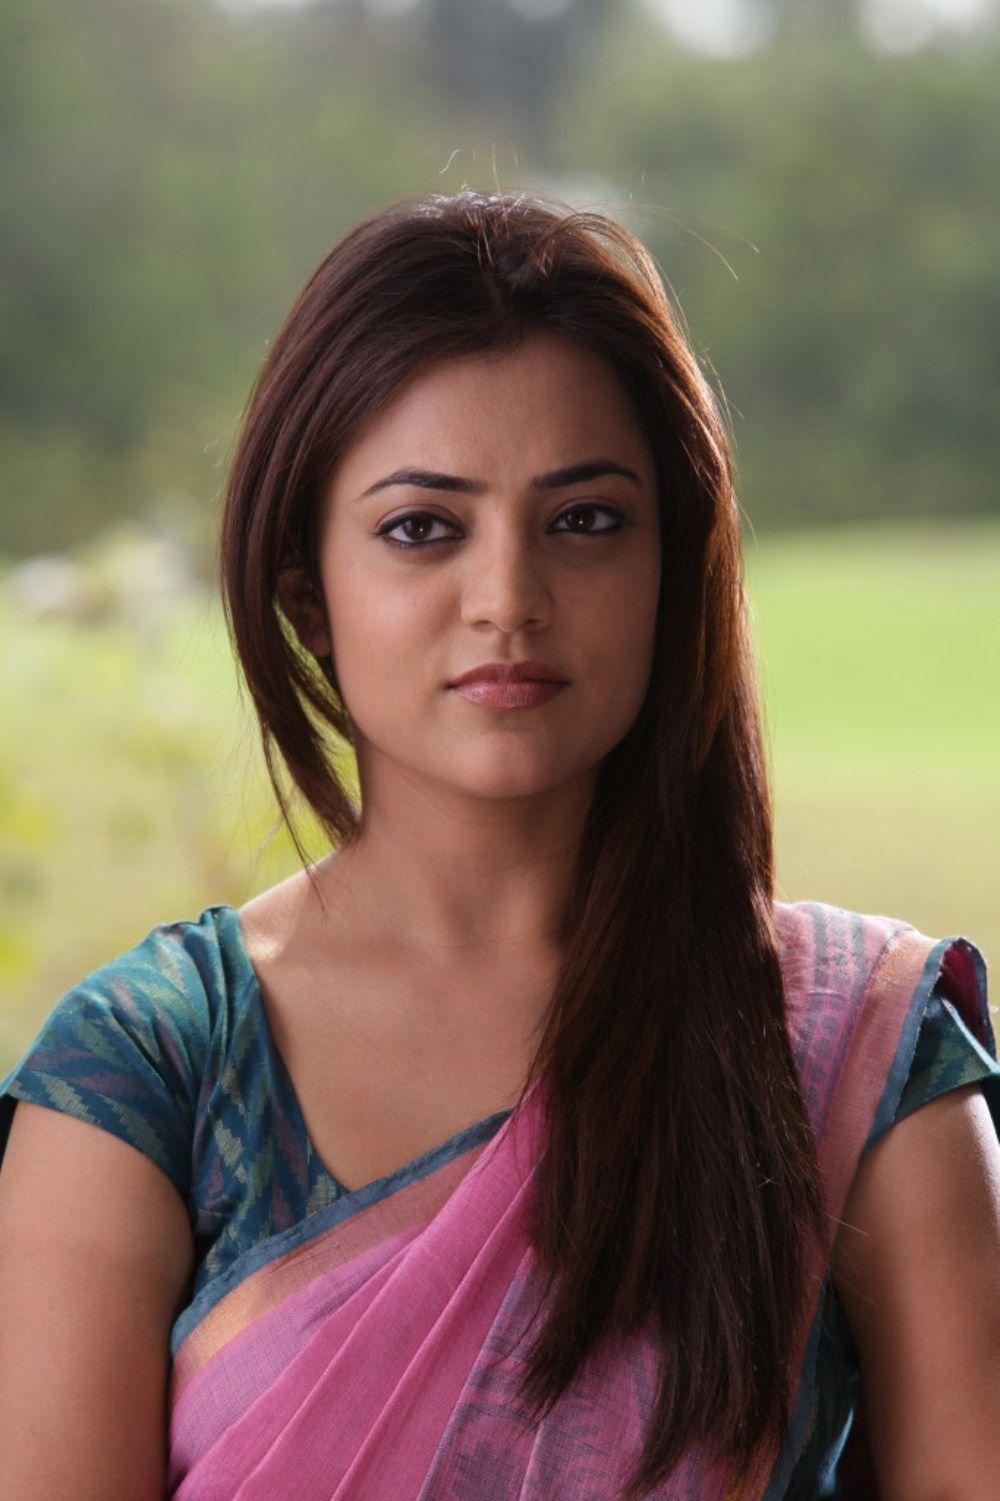 SOUTH INDIAN ACTRESS wallpapers in HD: Nisha Agarwal Pink saree